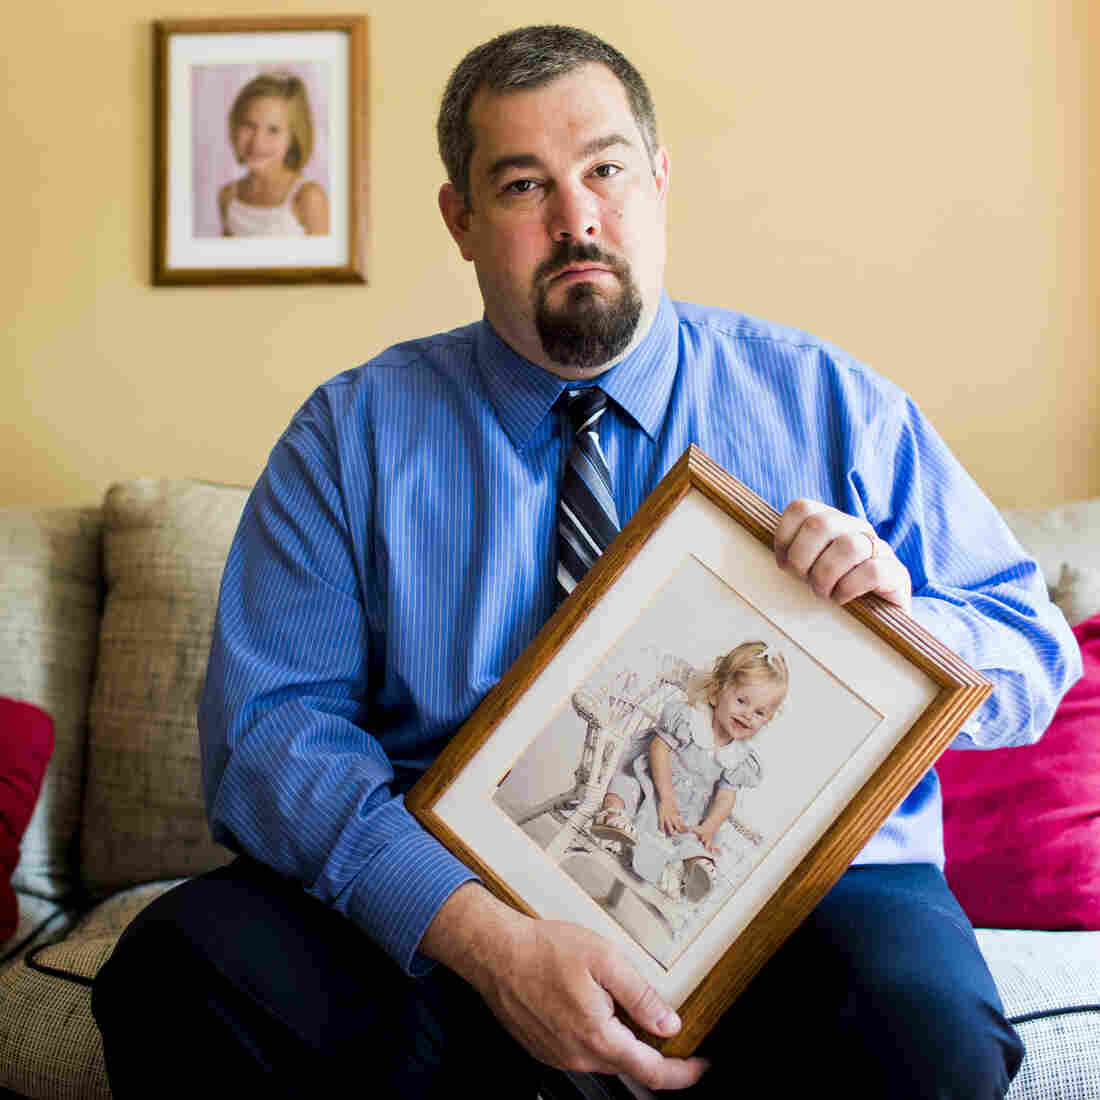 Chris Truitt holds a photo of his daughter, Alyssa, who died when she was 2, at his home in De Forest Wis. After donating her organs and tissues, he decided on a career change that made him rethink tissue donation.